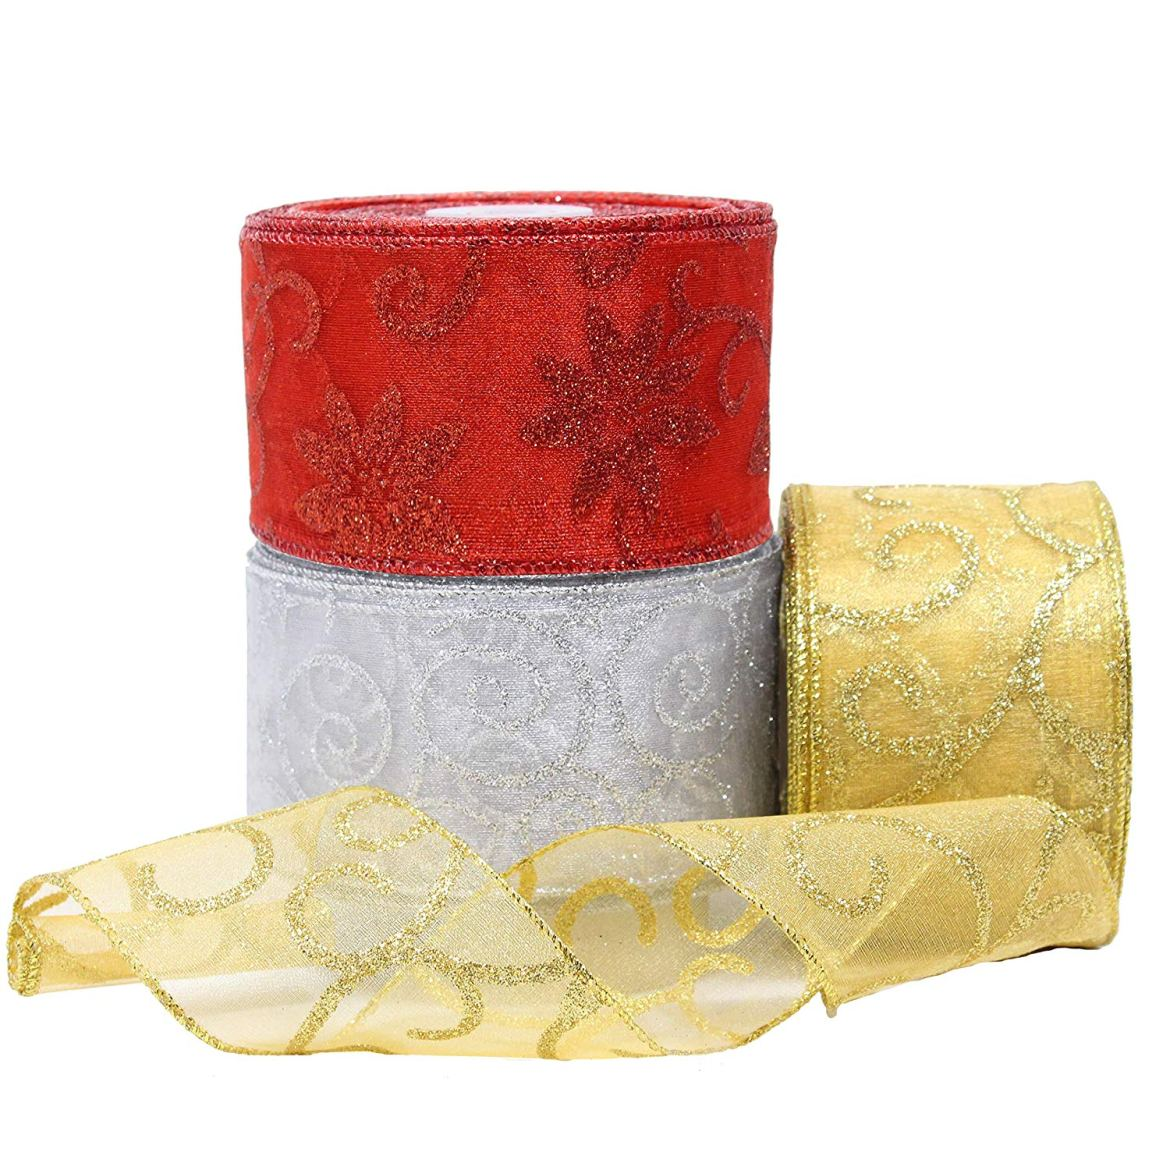 Gift wrapping how to